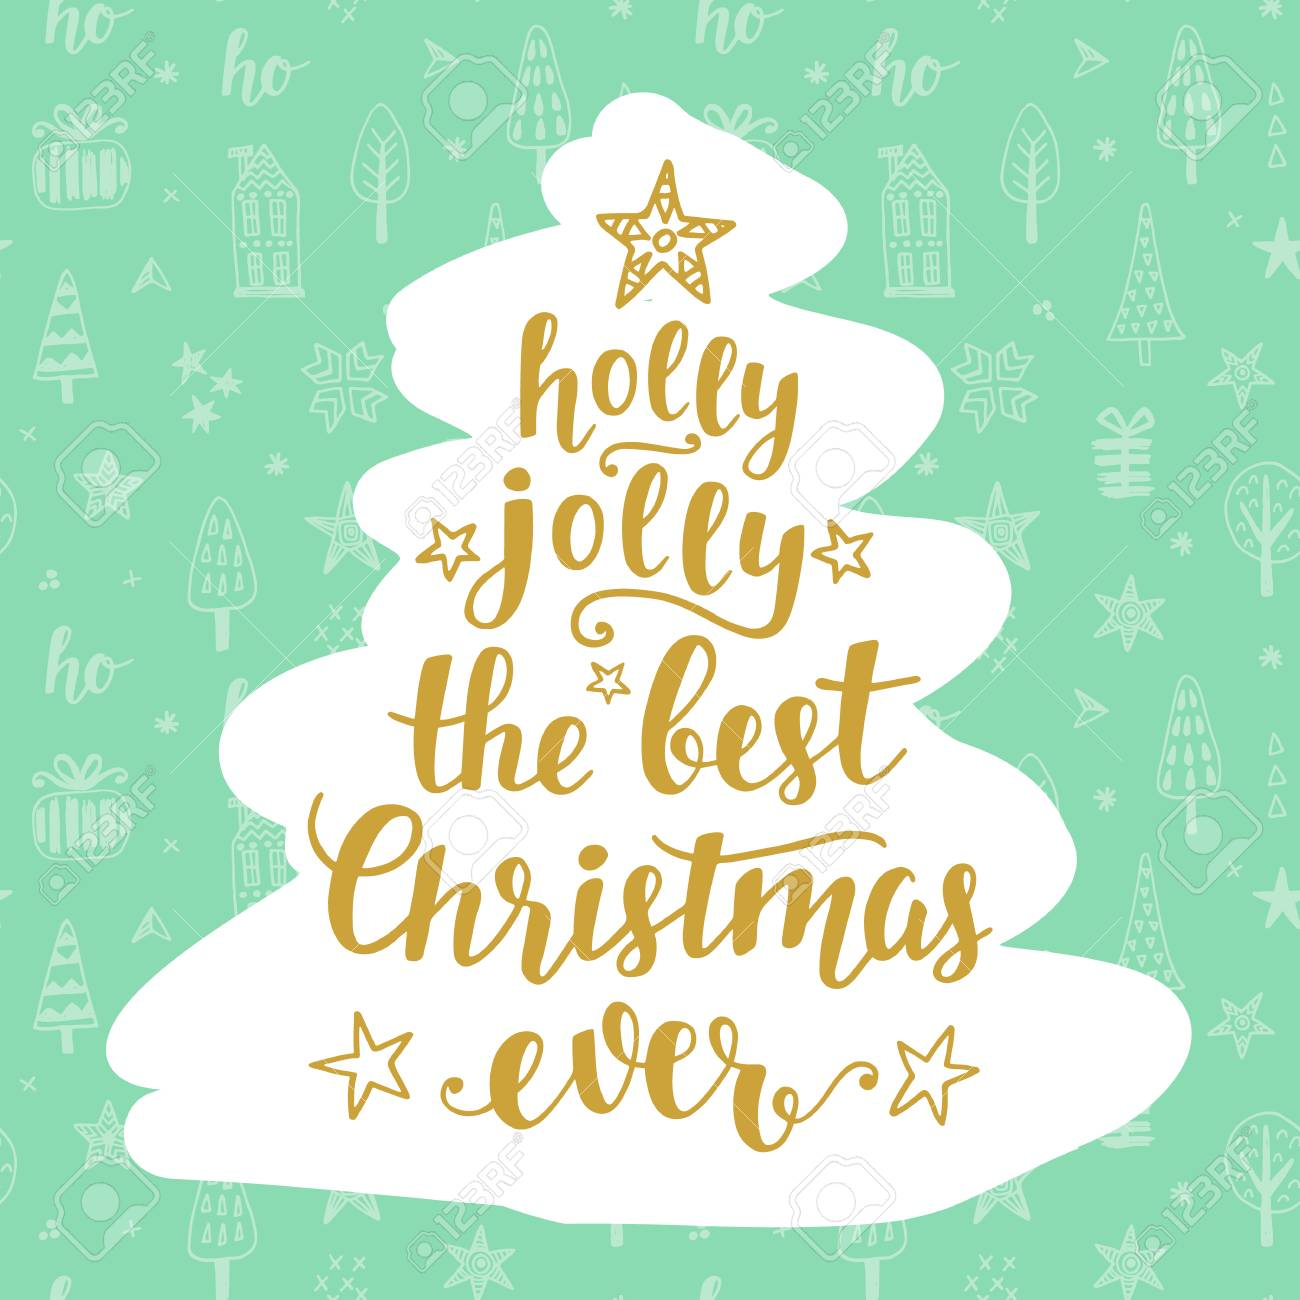 The Best Christmas Ever Holly Jolly Holidays Hand Written Lettering